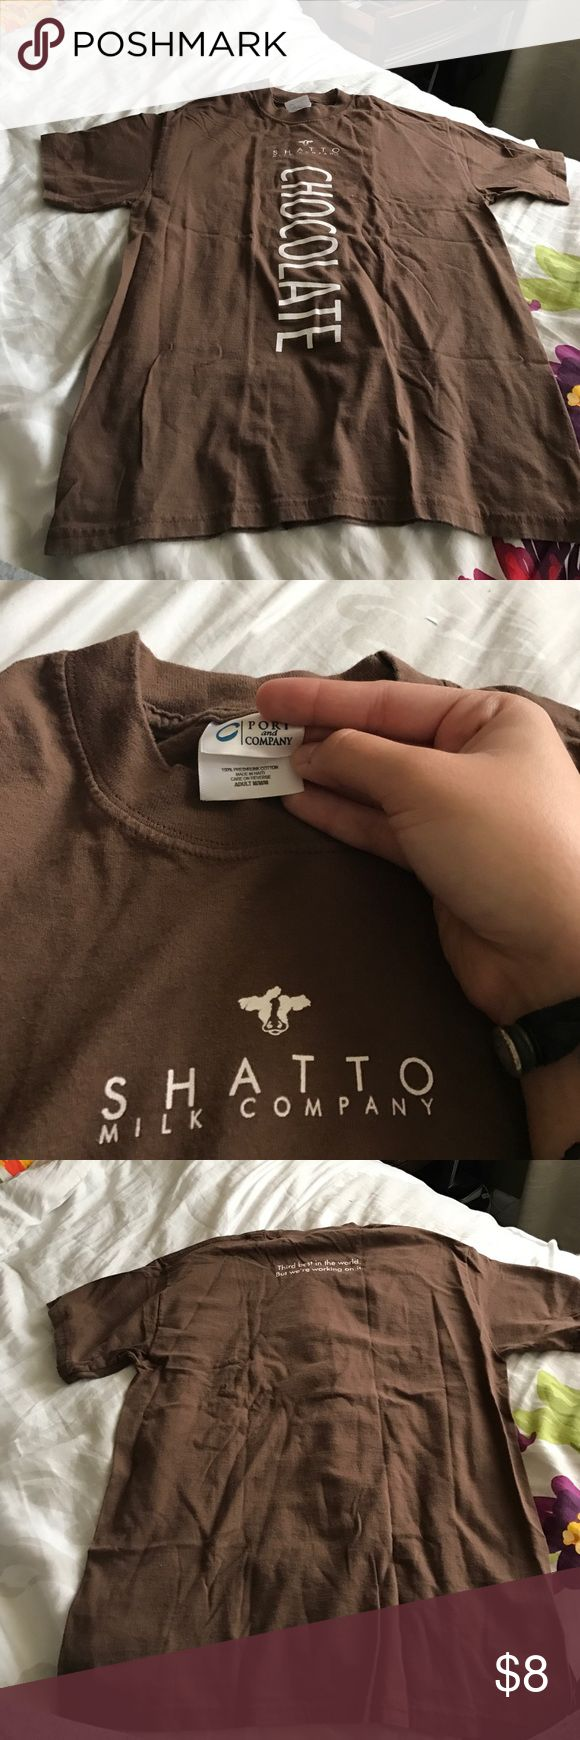 Shatto Milk Company T-shirt Almost new Shatto t-shirt. Great conditions. Super comfy!! Unisex, price is negotiable Tops Tees - Short Sleeve